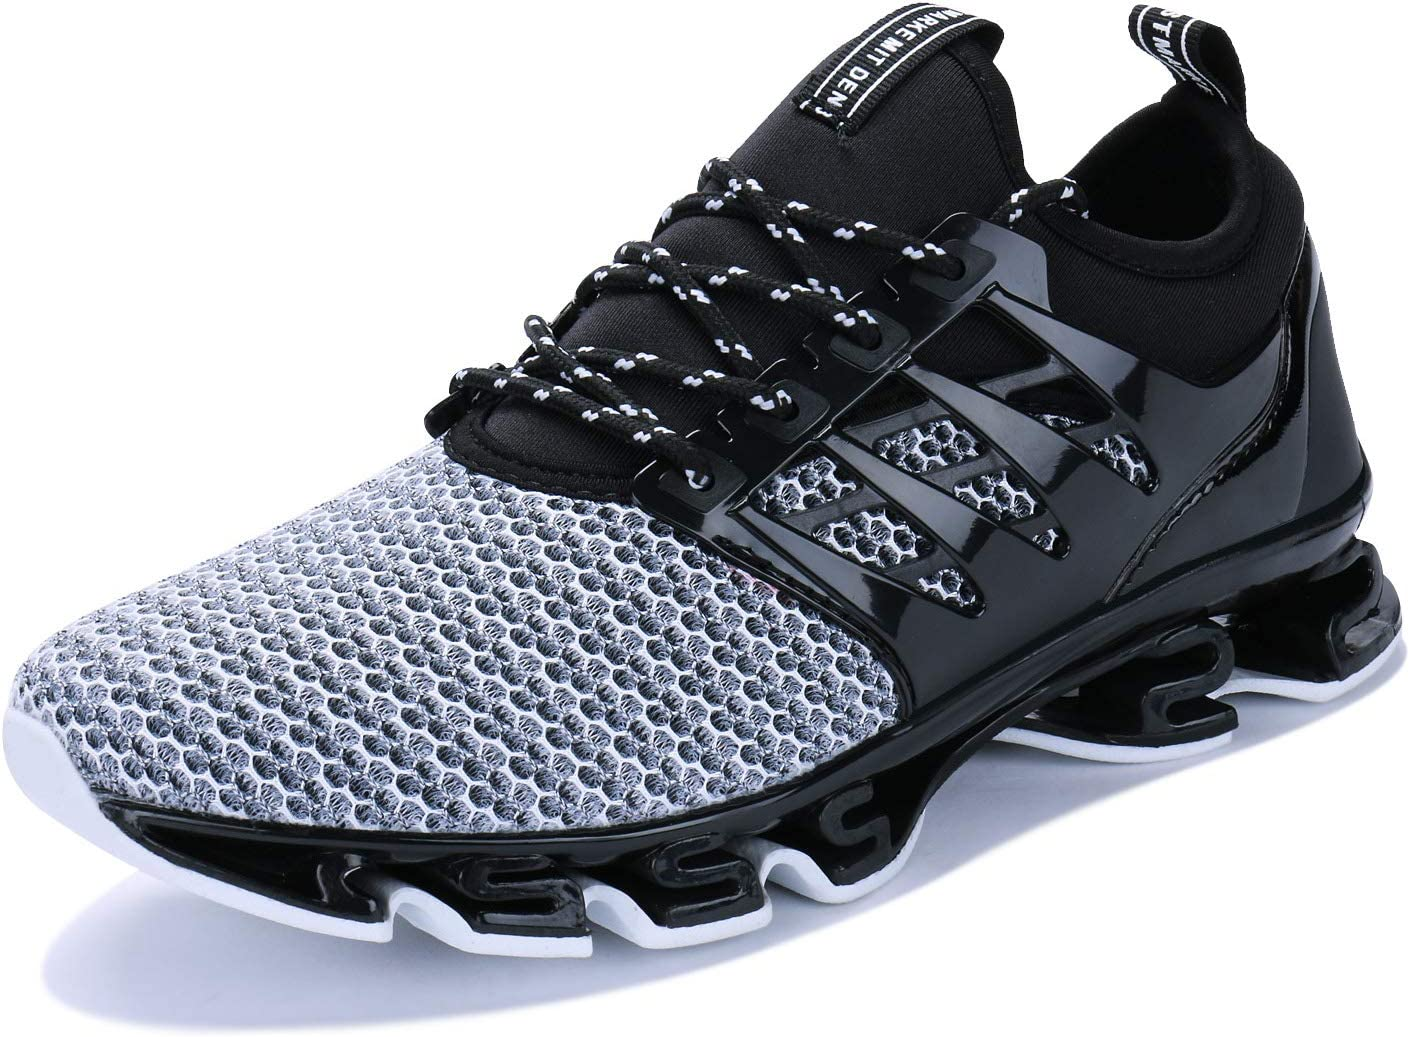 JointlyCreating Men Women Water Sports Shoes Slip-on Quick Dry Aqua Swim Shoes for Pool Beach Surf Walking Water Park 1-black White